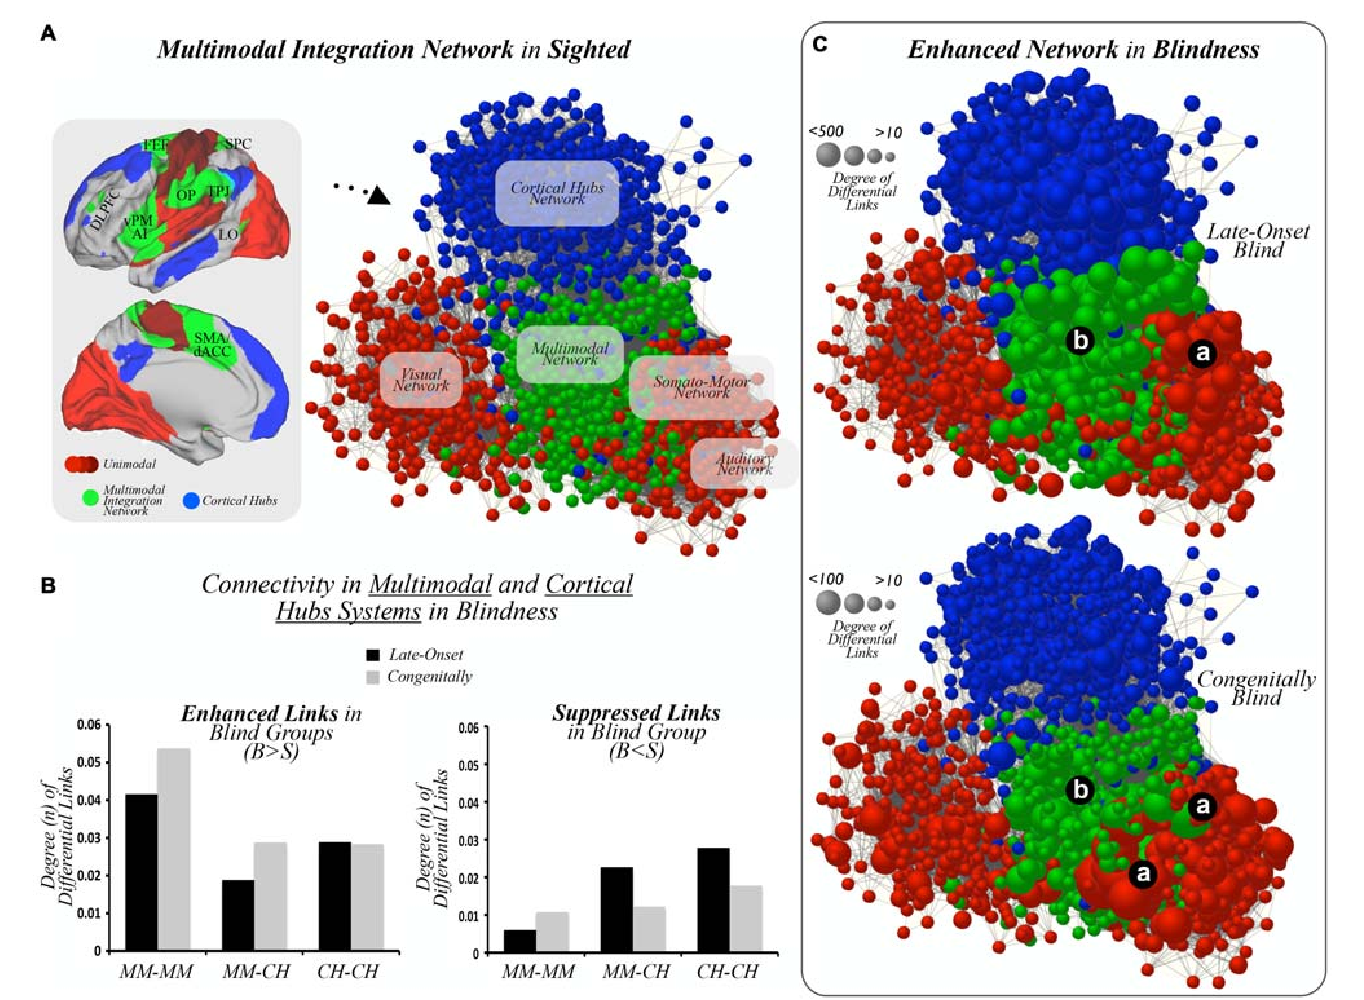 FIGURE 2   Multimodal integration networks. (A) Unimodal sensory cortices (different shades of red), multimodal integration cortices (green), and cortical hubs (blue) are displayed on template brains, as well as on a graph layout illustrating connectivity patterns across systems in the sighted controls. DLPFC = dorsolateral prefrontal cortex, FEF = frontal eye field, SPC = superior parietal cortex, vPM = ventral premotor, AI = anterior insula, OP = operculum parietale, TPJ = temporo-parietal junction, LO = lateral occipital, dACC = dorsal anterior cingulate cortex. (B) Bar graphs show statistically significant increased or enhanced (left) and decreased or suppressed (right) interconnectivity between multimodal regions and cortical hubs in blind subjects compared to MCs. Results in bar graphs show the total amount of FDR-corrected functional connections that differ between studied groups, and, thus, standard deviation or error bars do not apply here. MM = multimodal, CH = cortical hubs, B = Blind, S = Sighted. (C) Graph based layouts of the three hierarchical networks in LB and CB subjects [size of nodes = degree of differential links (DDL)]. Due to normalization and scale proportions, both segments of panel (C) were scaled to aid visualization. (a) unimodal cortices; (b) multimodal integration cortices.